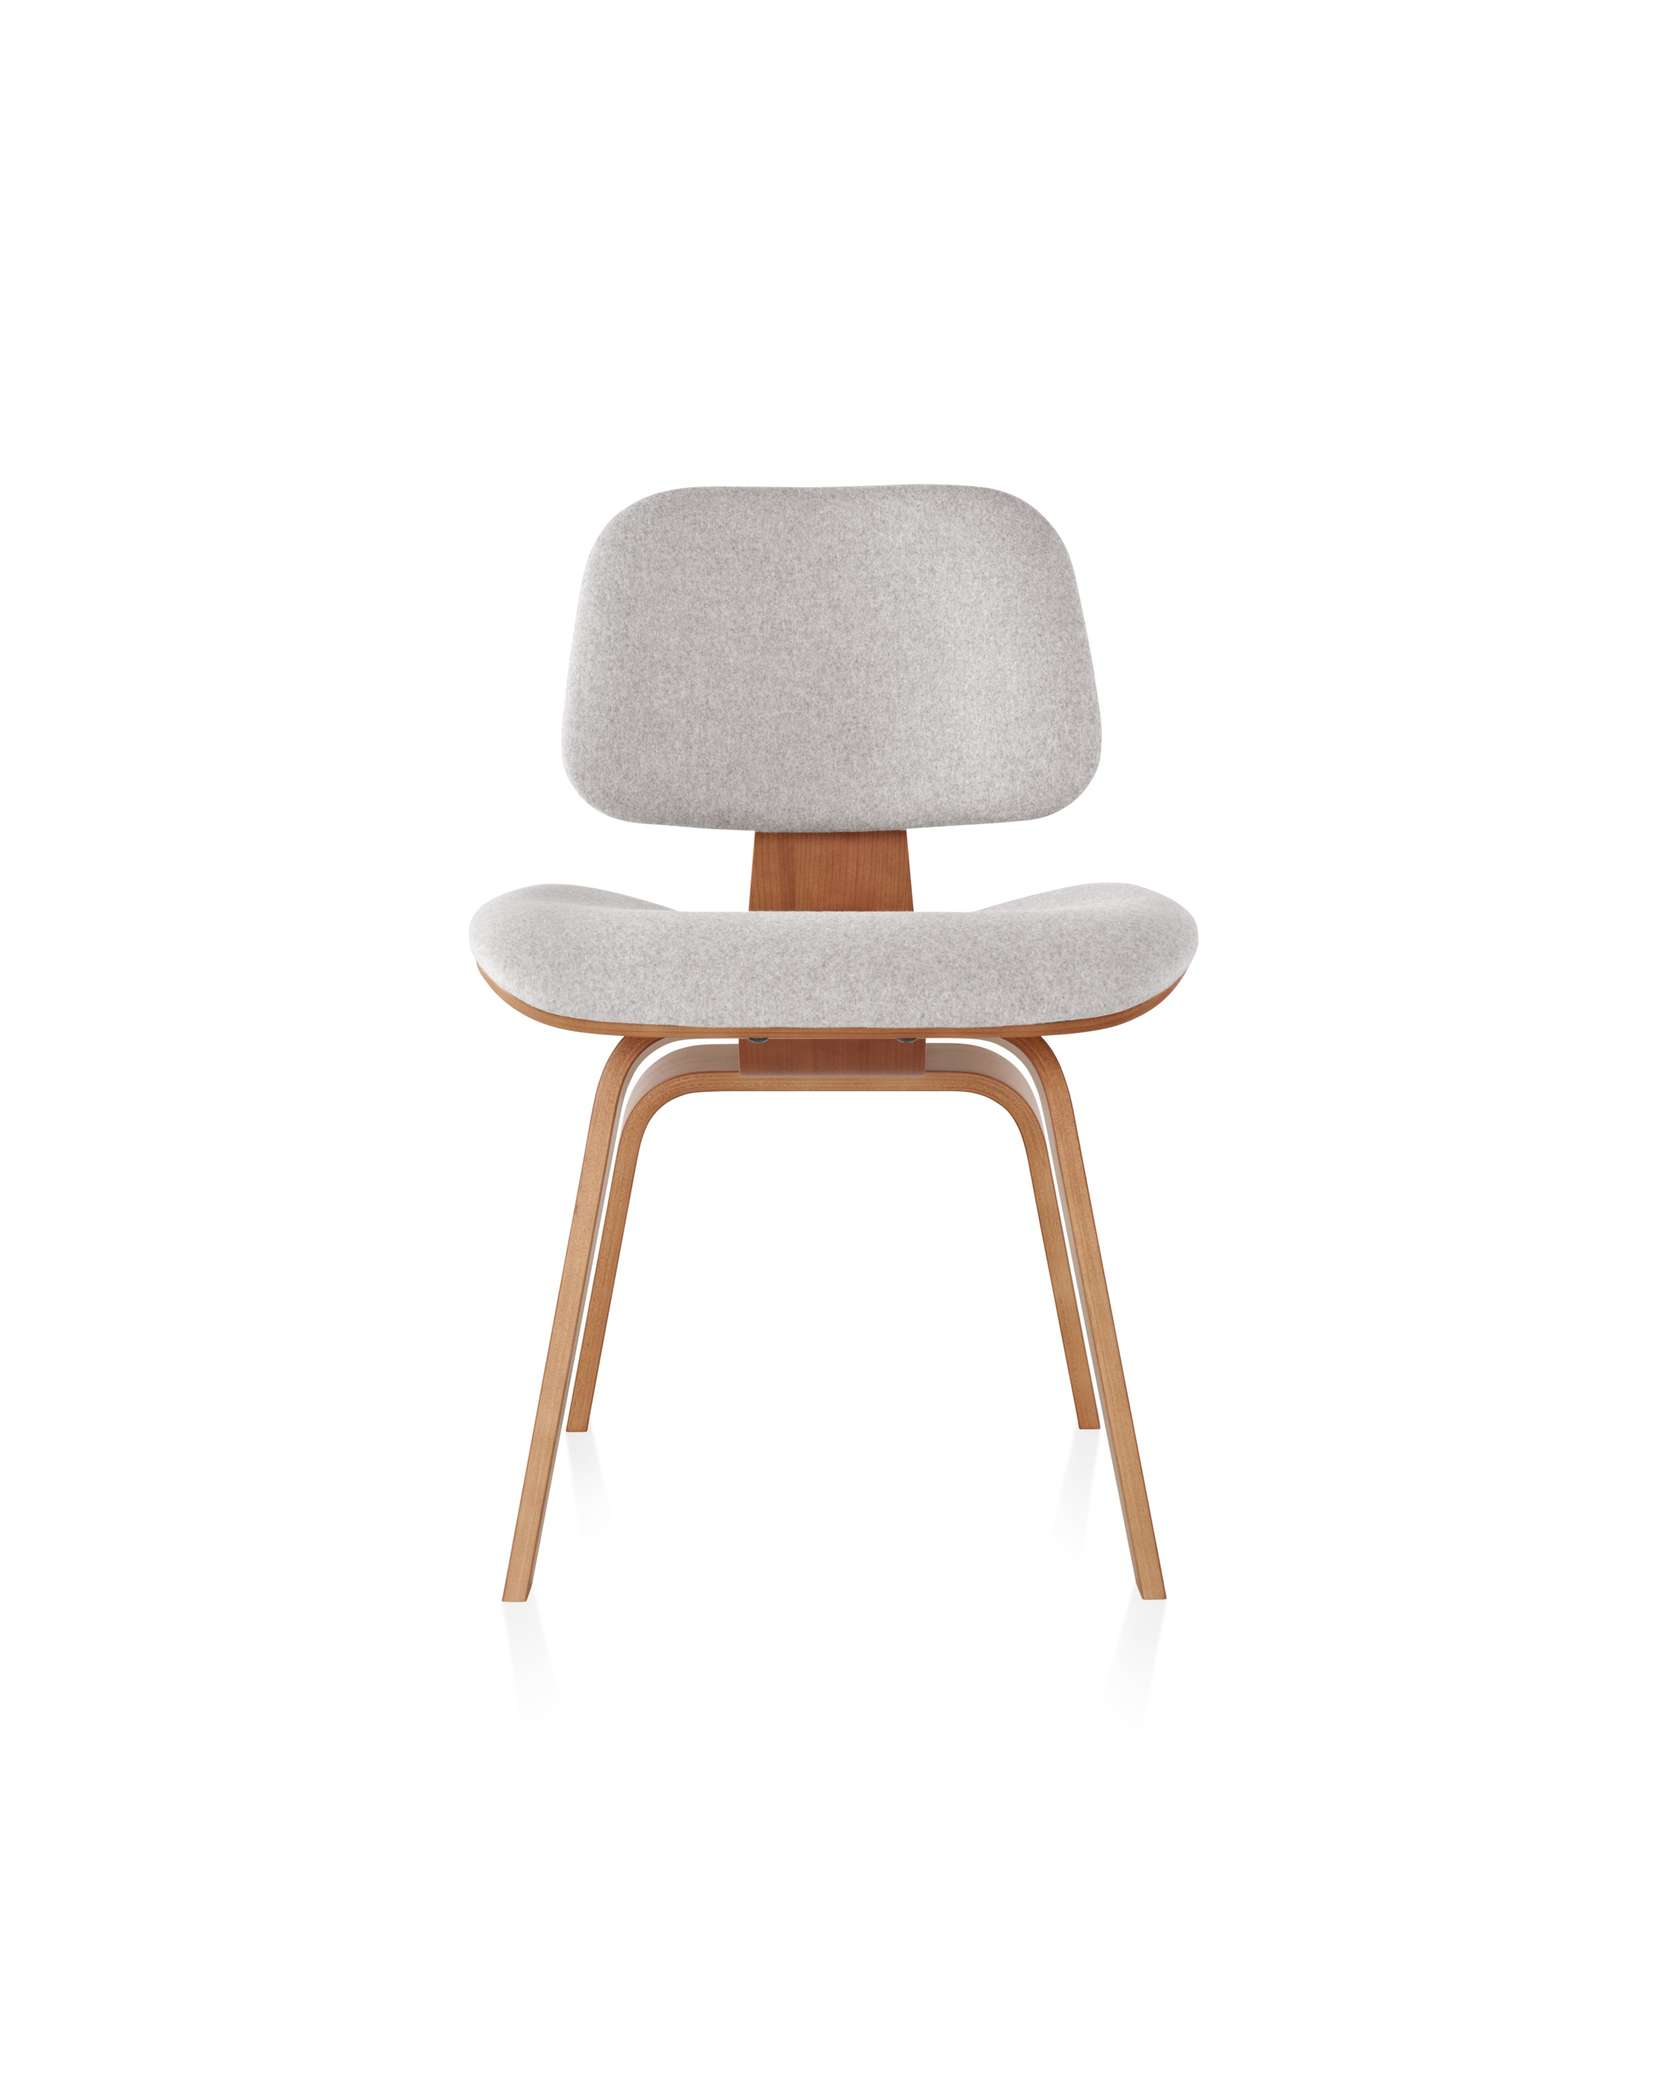 Eames Molded Plywood Chairs Architizer